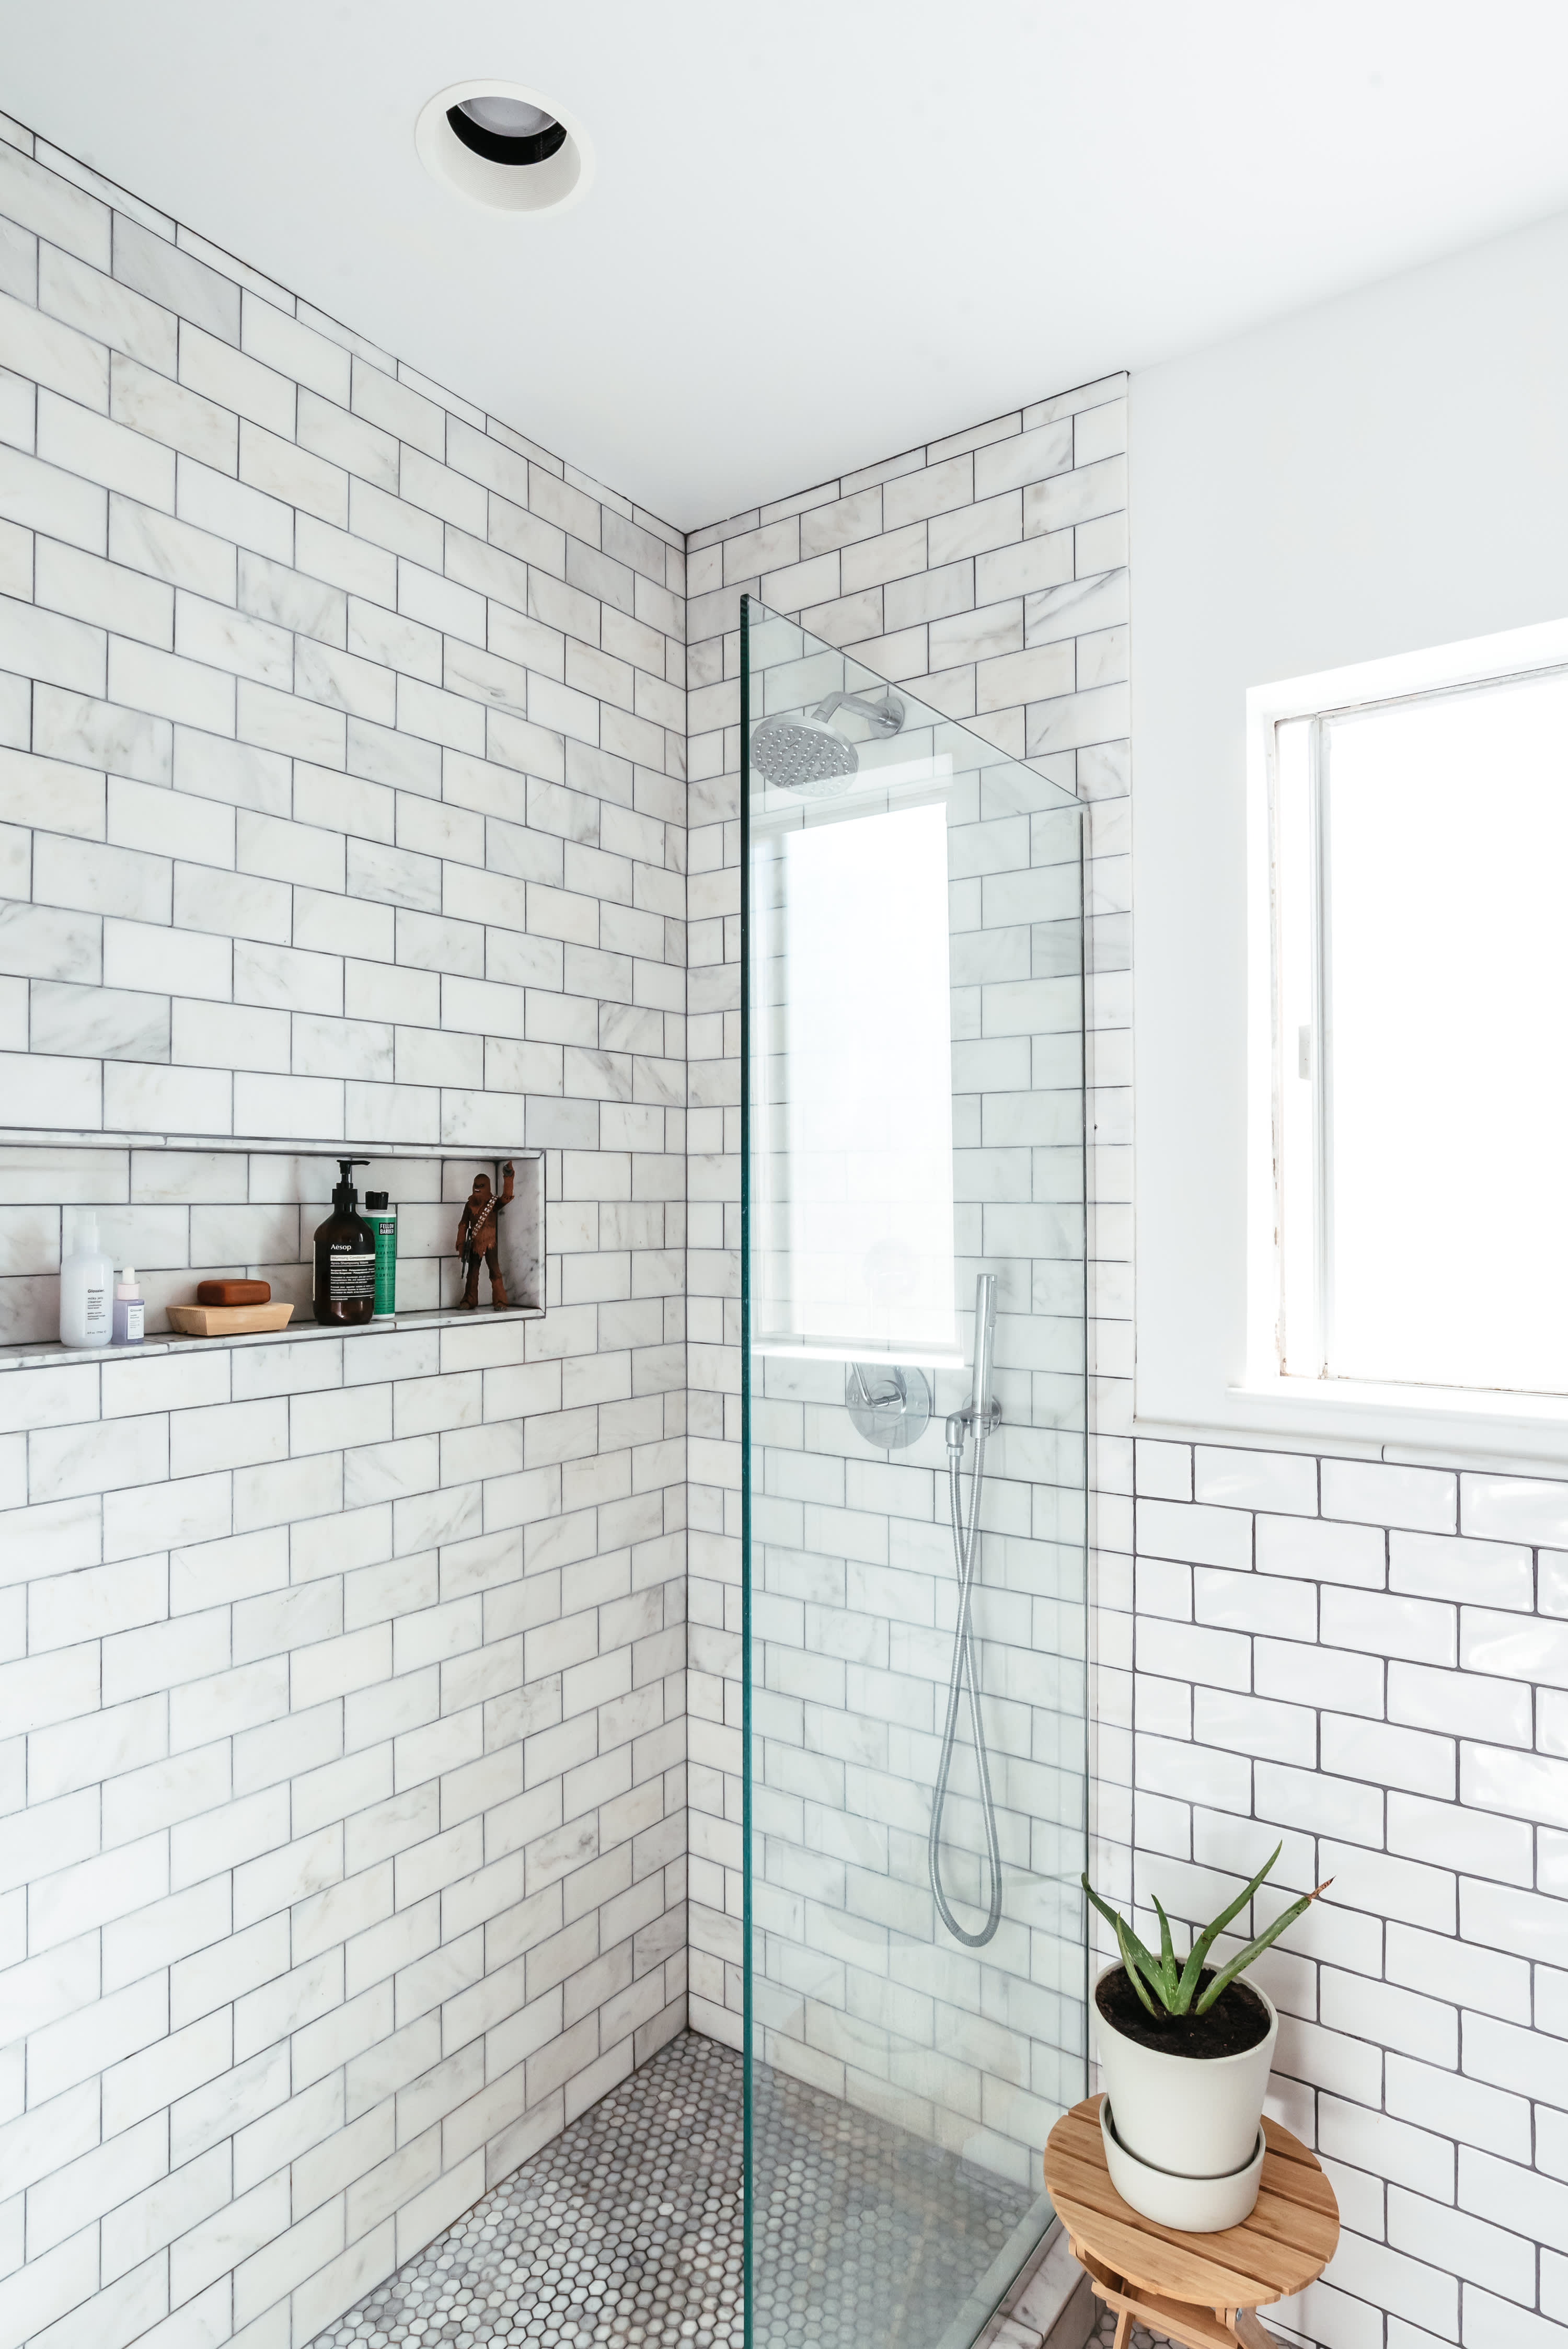 Bathroom Tile Ideas - Floor, Shower, Wall Designs ...